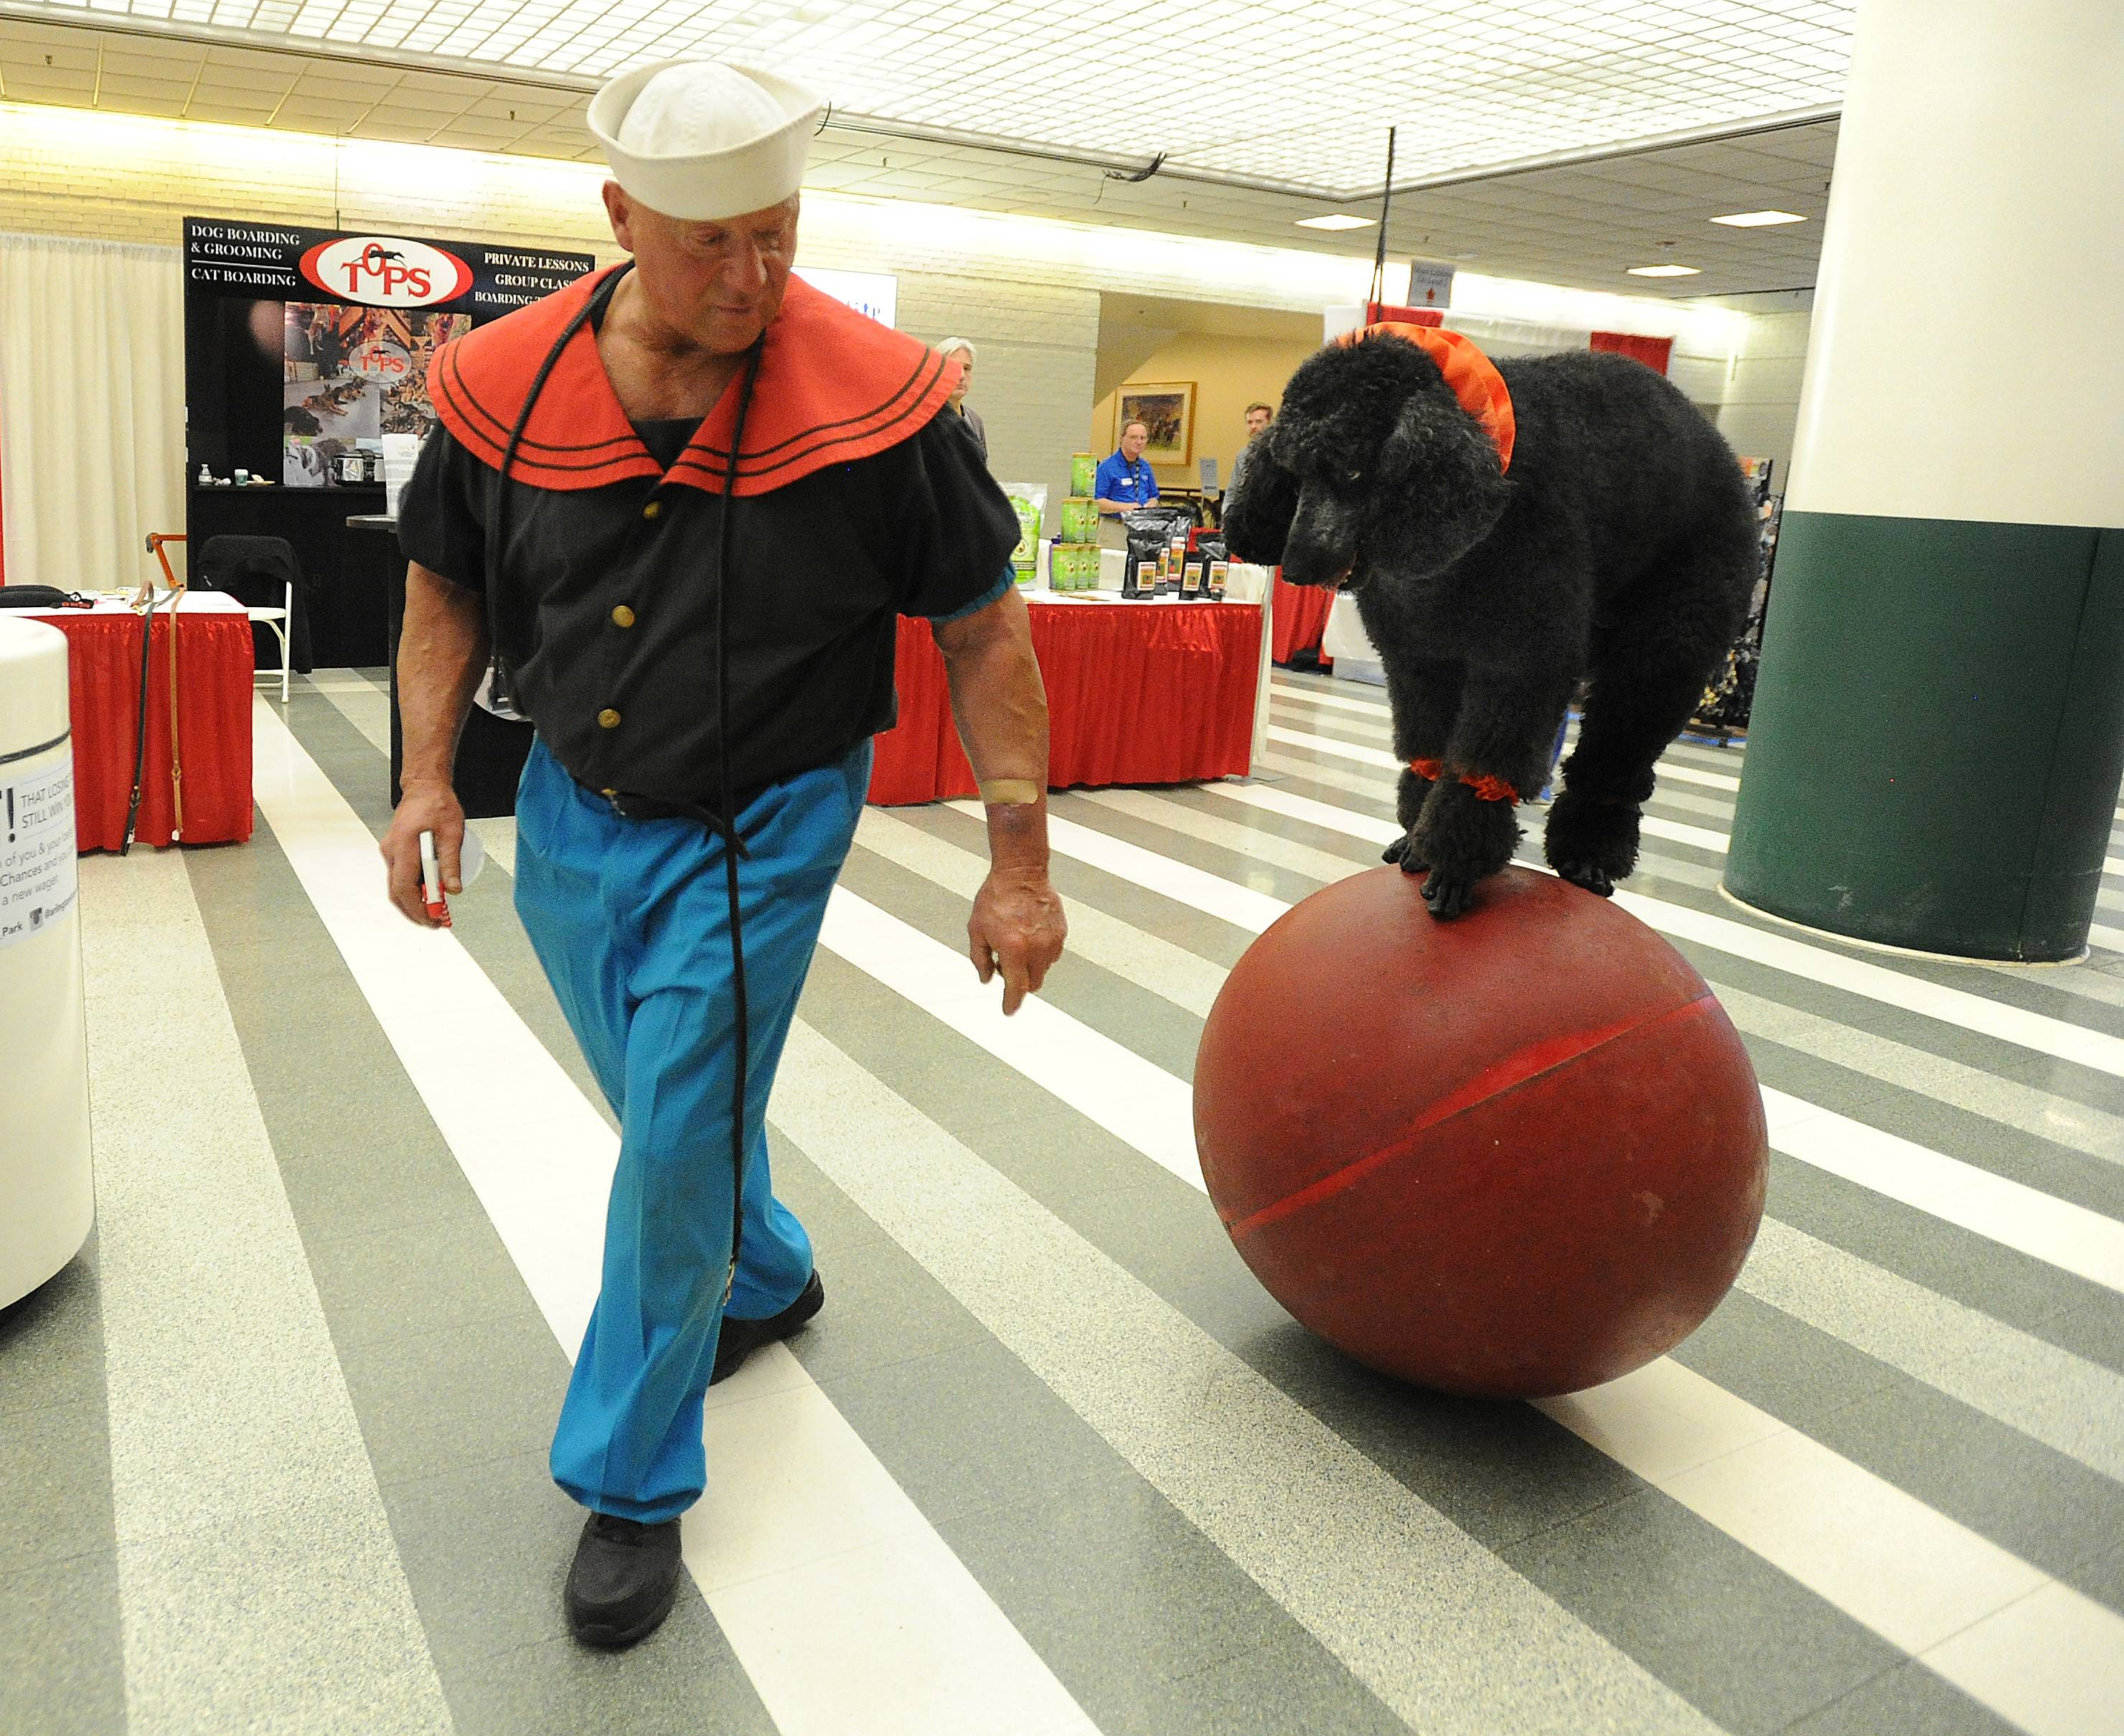 Sailor the poodle has many skills, but his owner, Alex Rothacker of Wildwood, has him practice walking on a big rubber ball before he jumps through hoops Friday at the Chicagoland Family Pet Expo at Arlington Park.